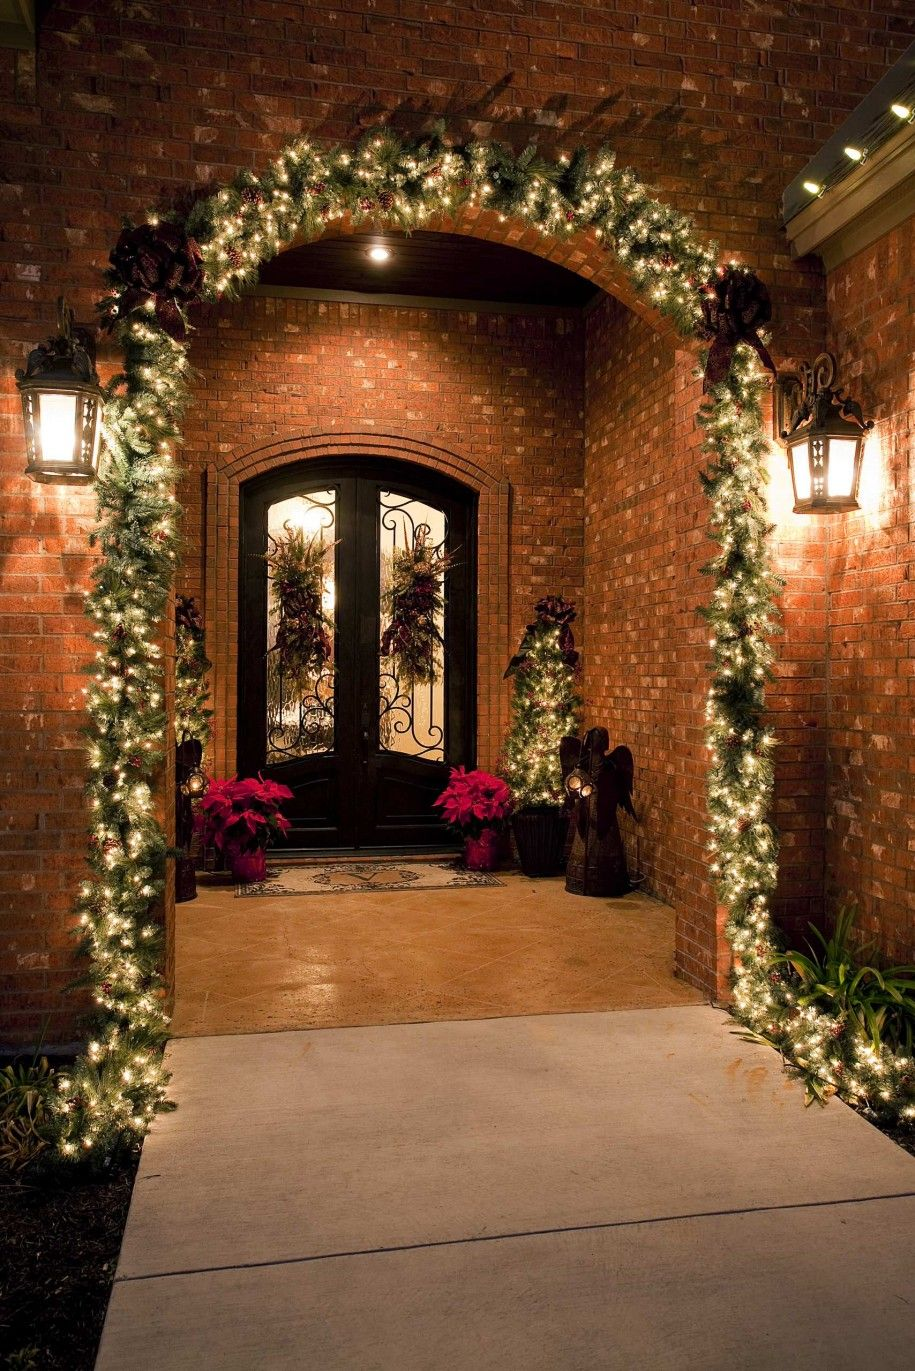 outdoor holiday lighting ideas architecture. Ornament Outdoor Holiday Lighting Ideas Architecture O